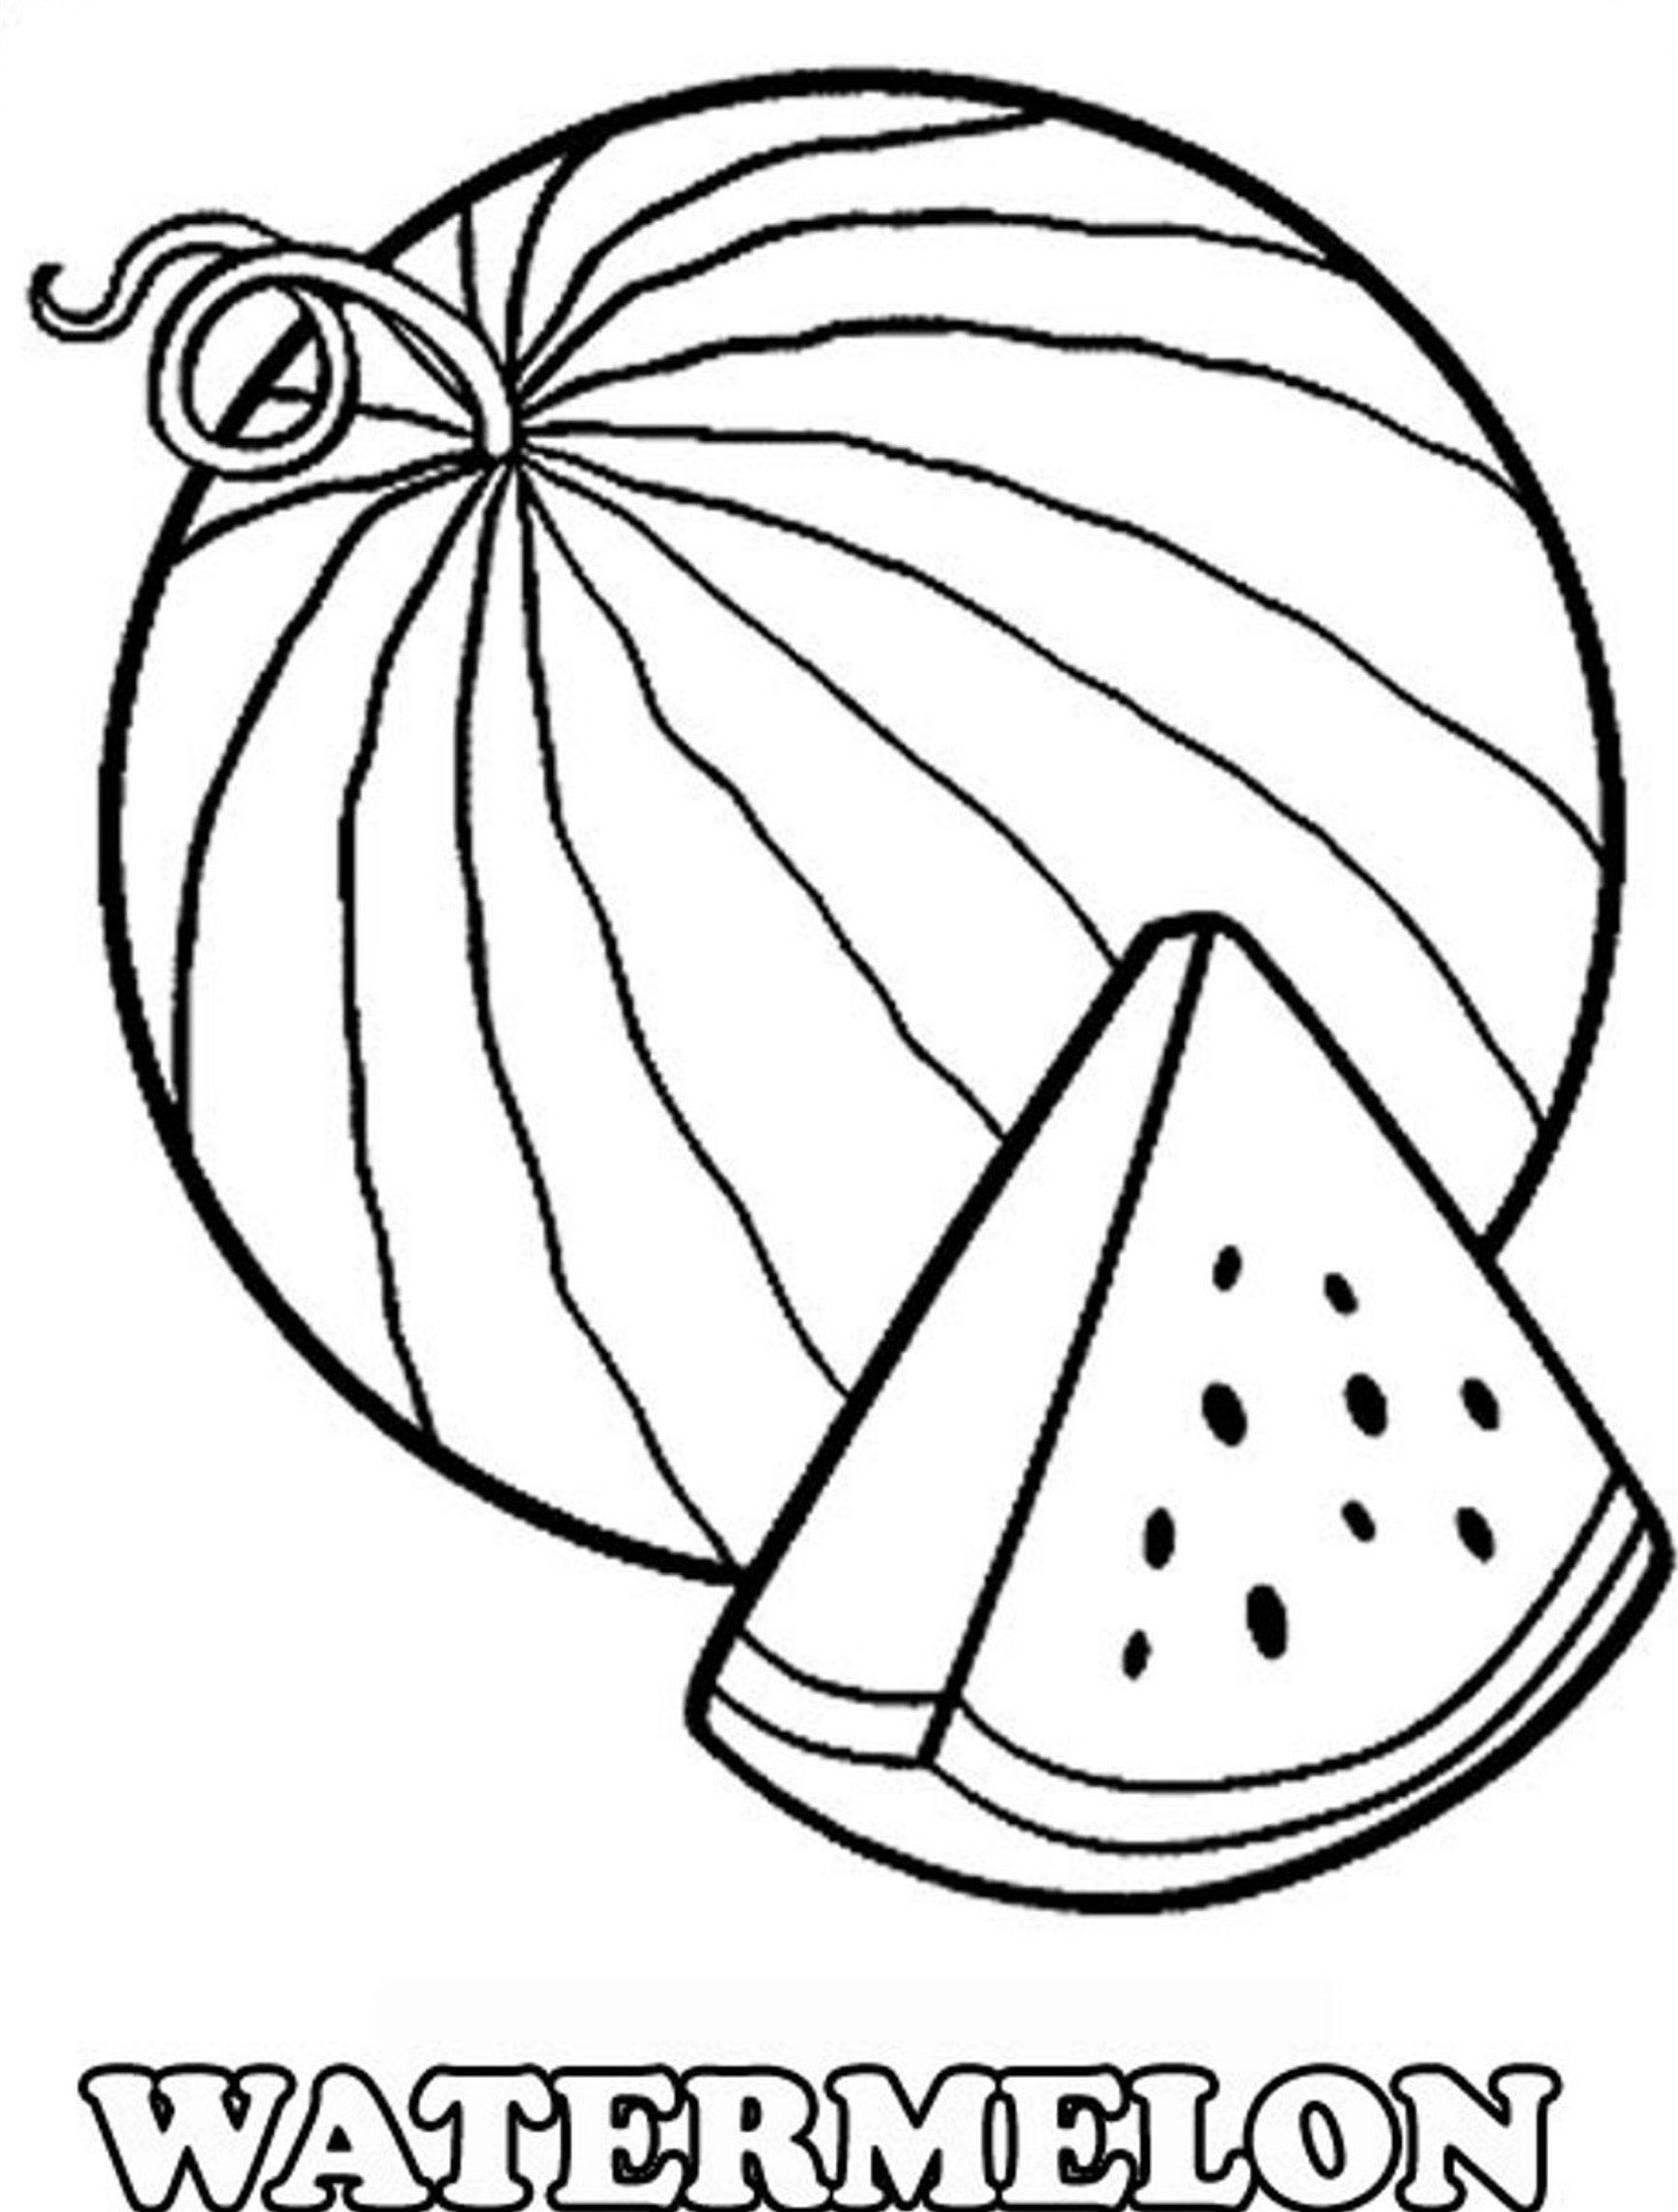 1738x2291 Coloring Pages For Kids Fruits Cartoon Watermelon Printable W Is